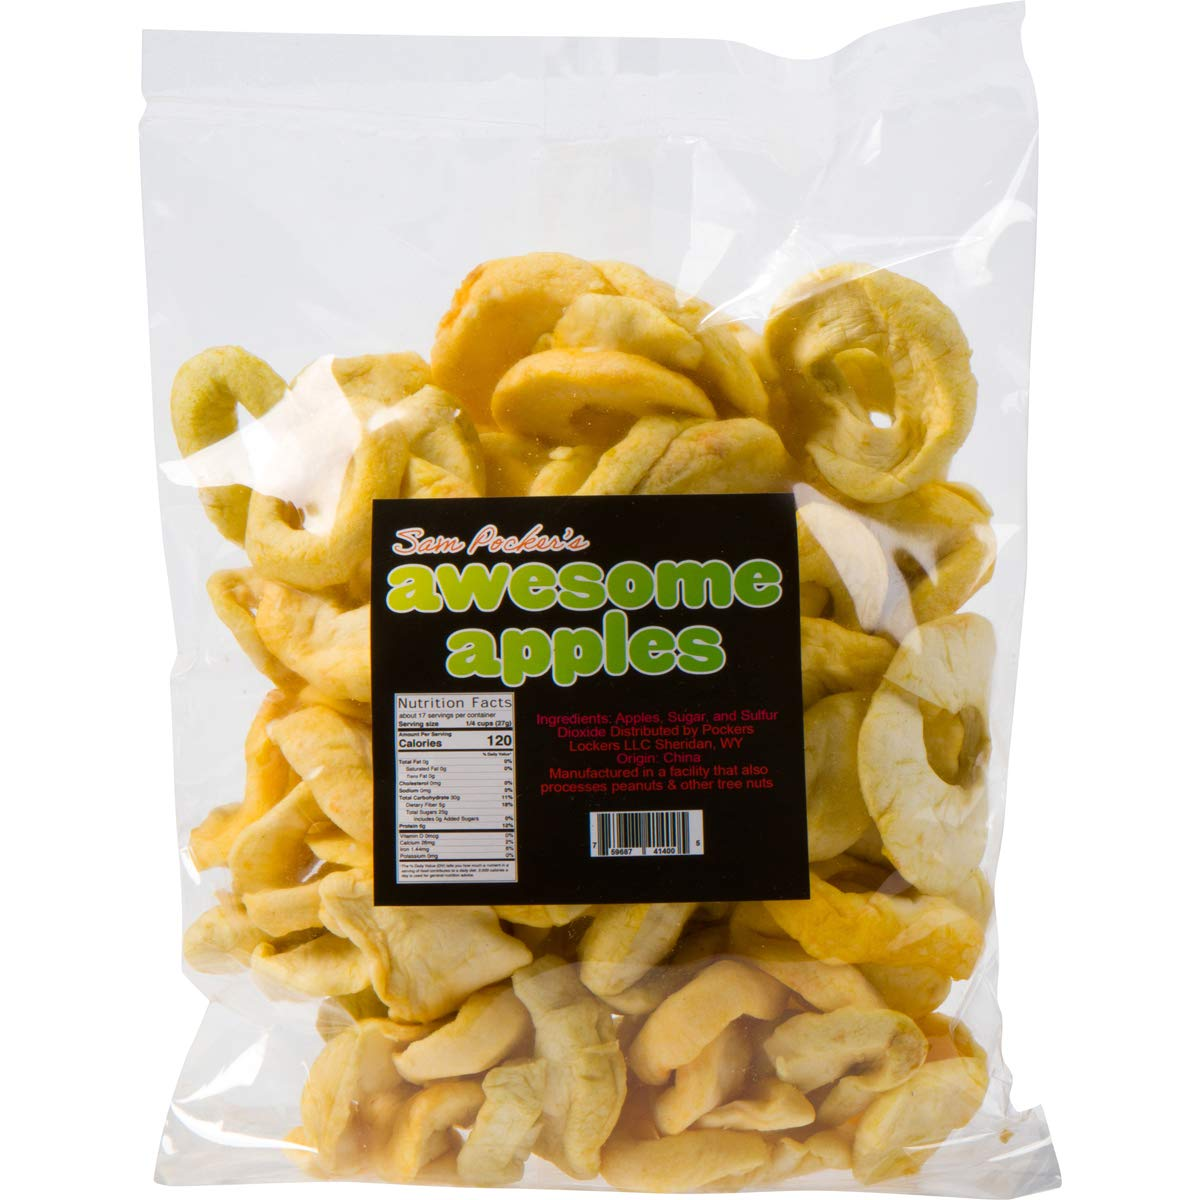 Sam Pocker's Awesome Apples - 1 Pound Bag of Real Dried Whole Apple Rings - Healthy Fiber-Rich Fruit Slices with Zero-Fat, Vegan, Asian Variety - Sweet Dehydrated Crisps with Sugar & Sulfur Dioxide